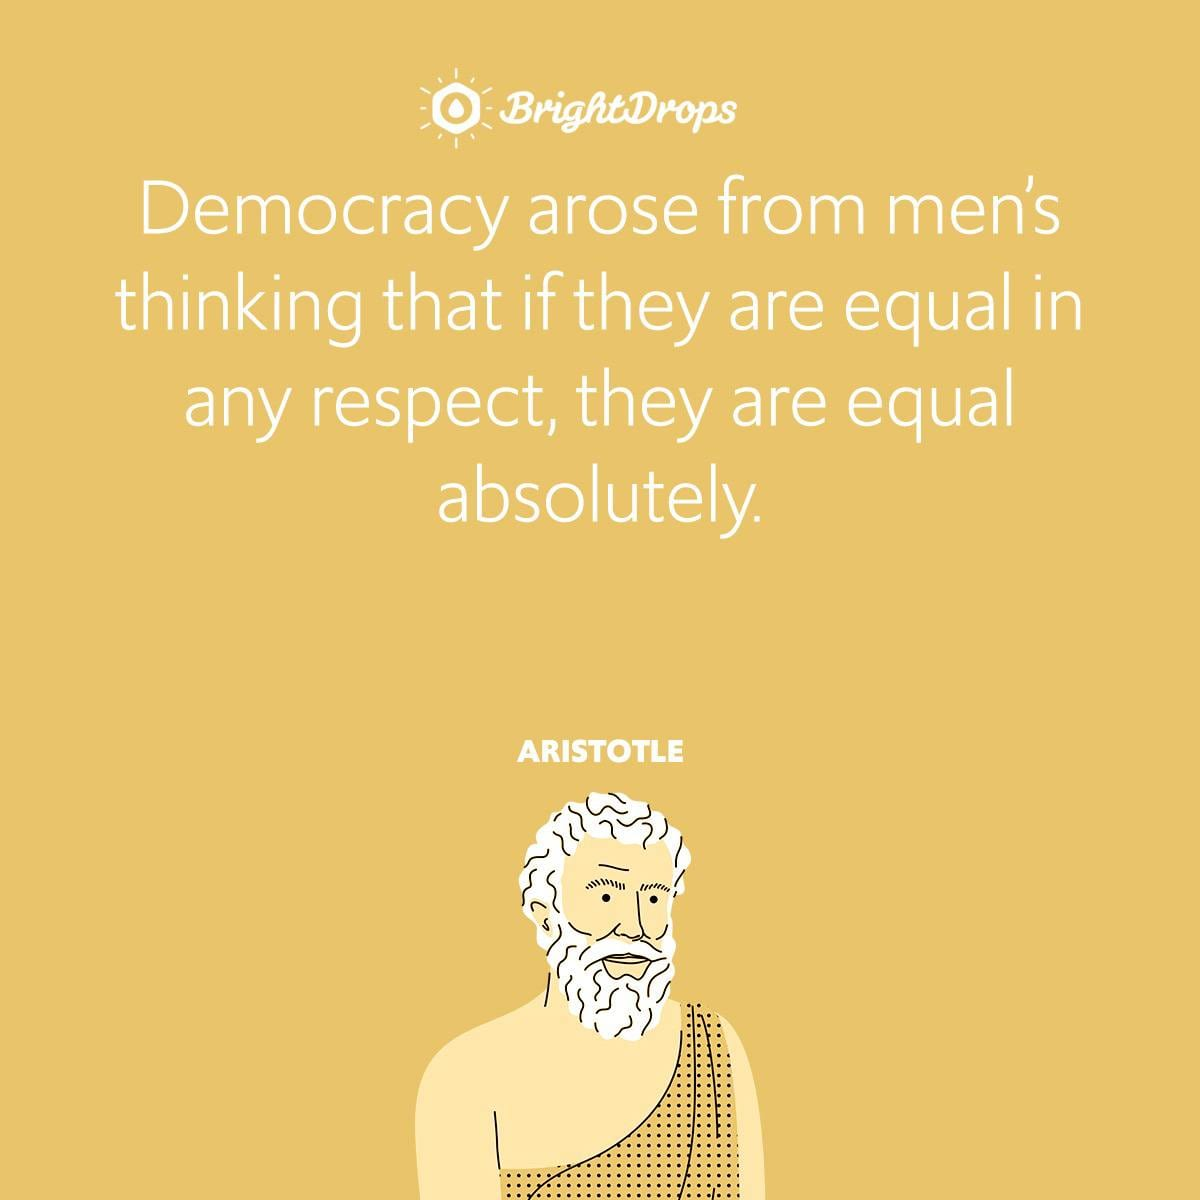 Democracy arose from men's thinking that if they are equal in any respect, they are equal absolutely.